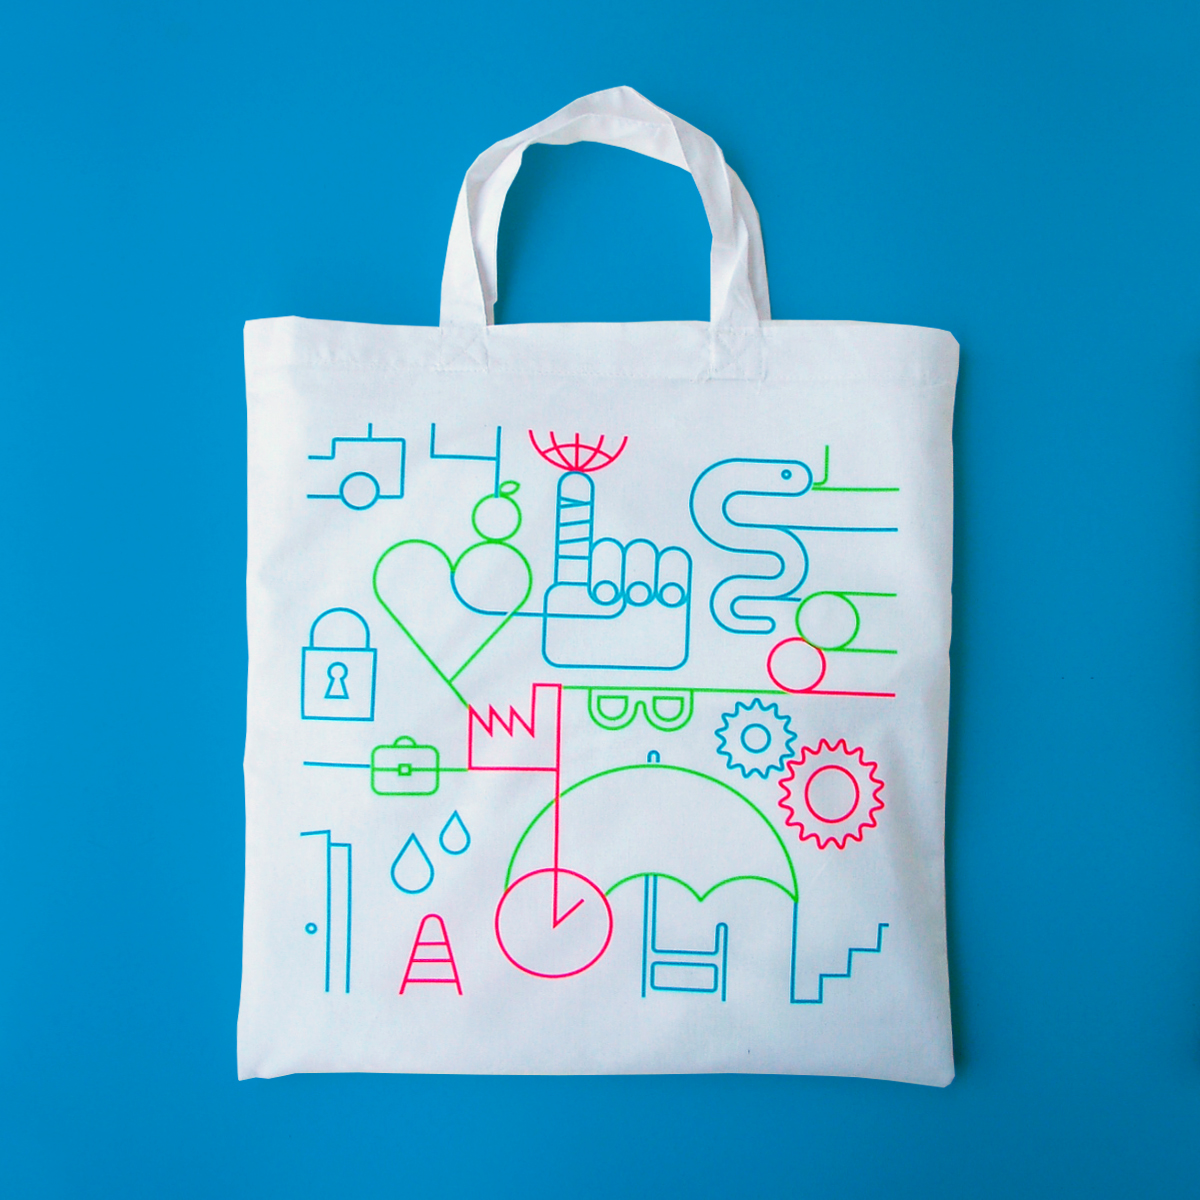 Annette_Jacobs_Safety_and_Health_Bag.jpg